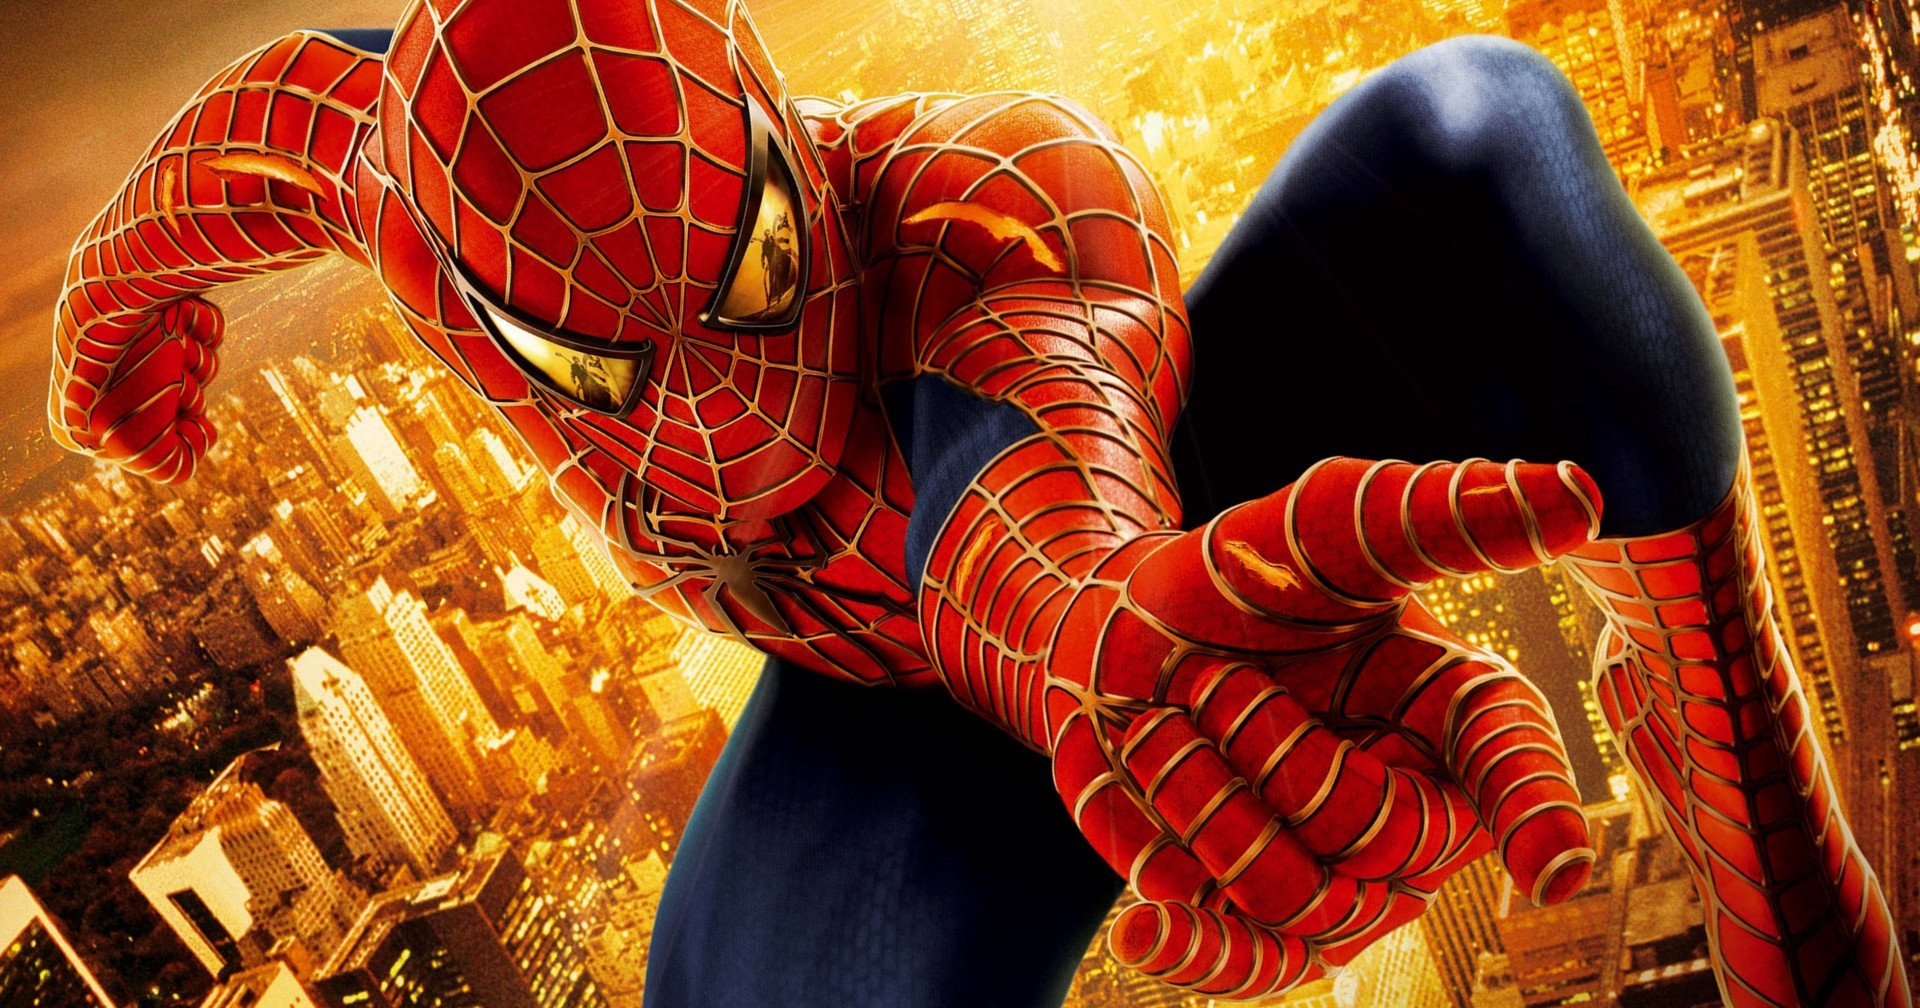 14308-fictional_character-creative_arts-spider_man_2.jpg